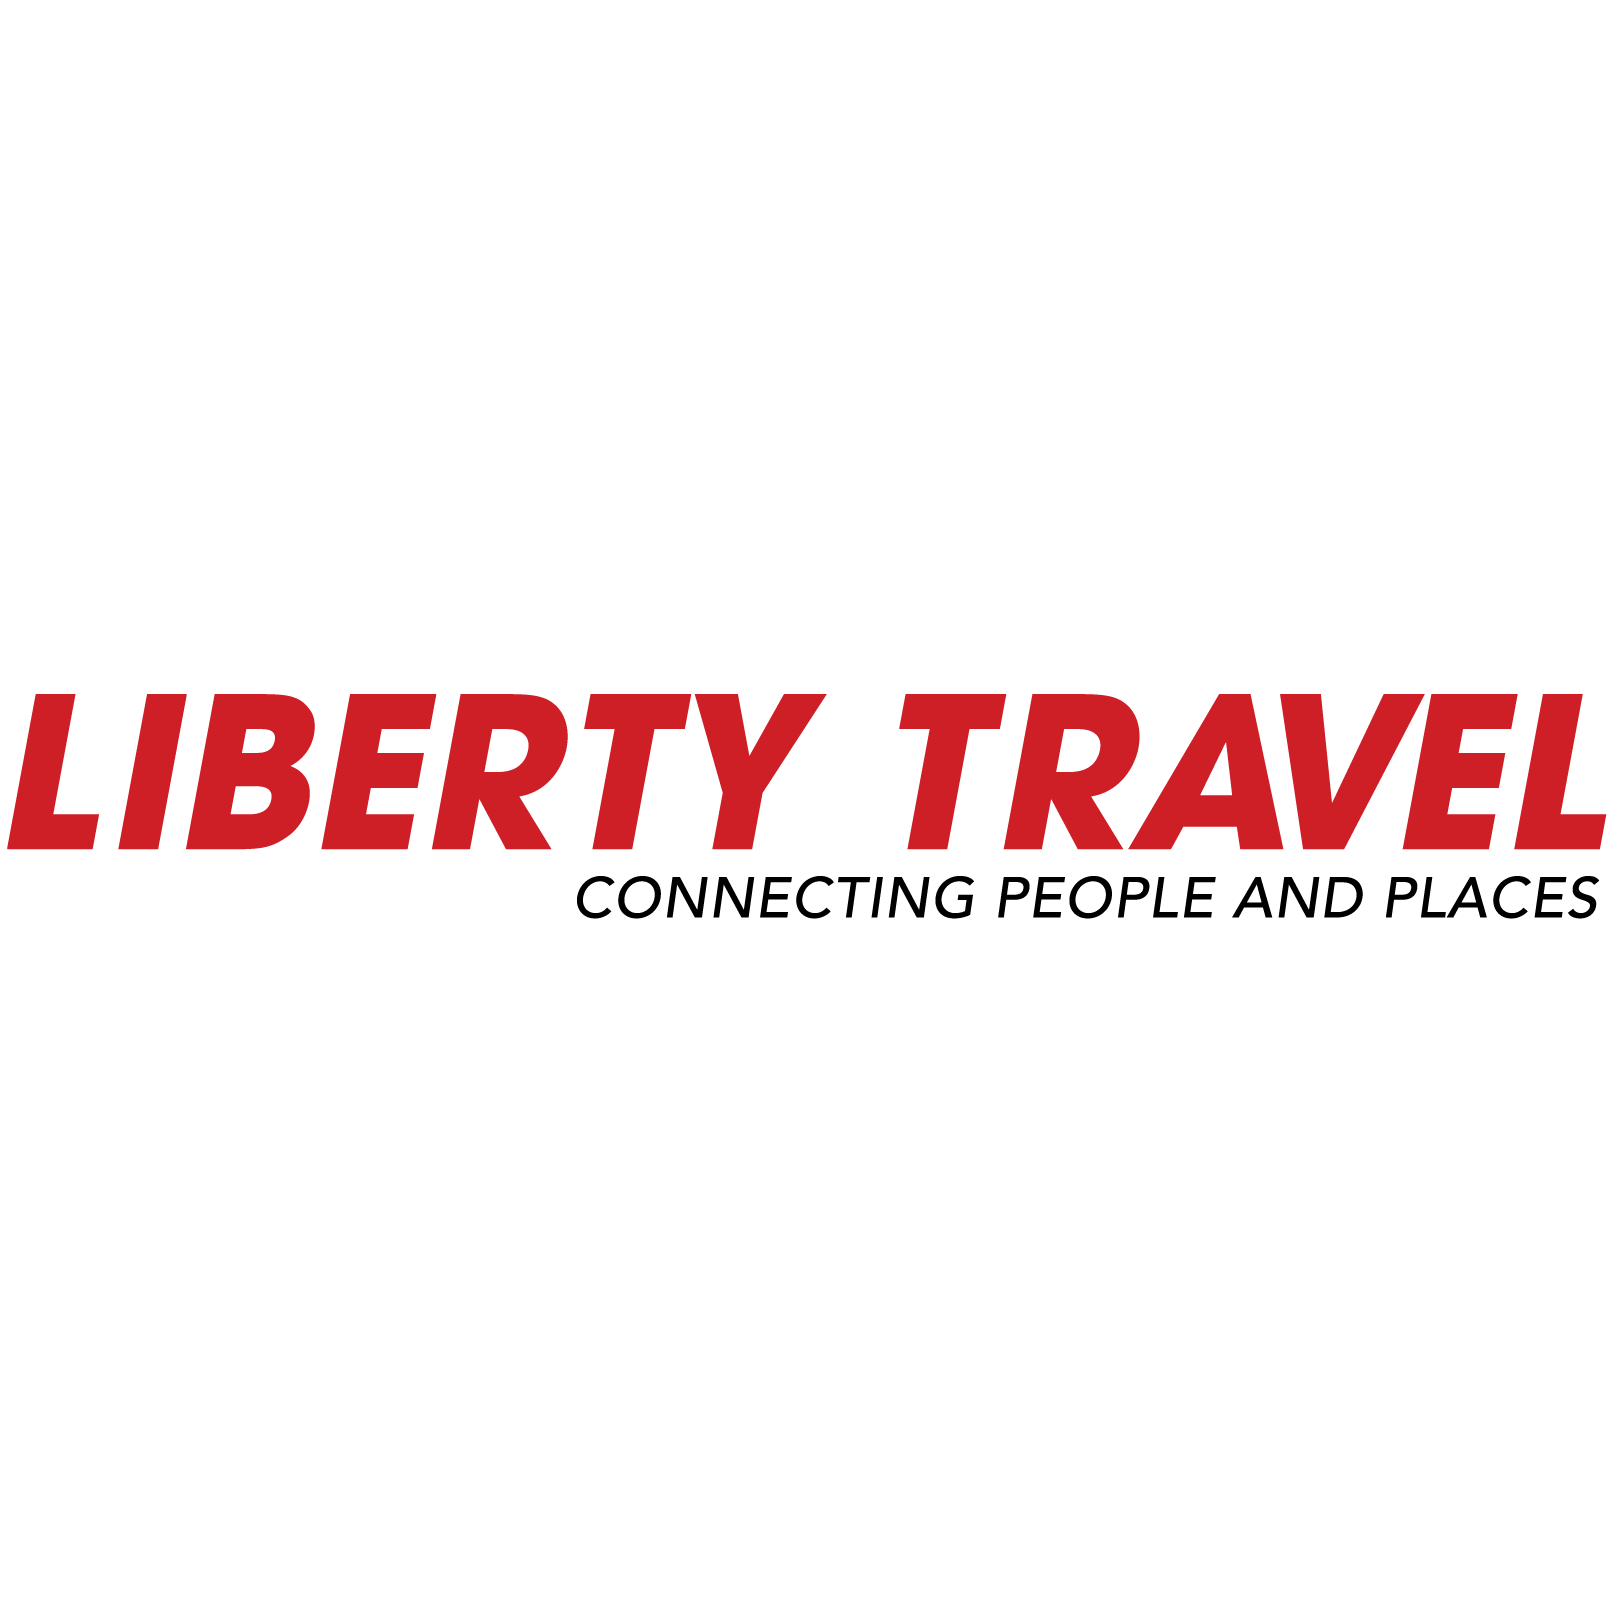 Liberty Travel - Burlington, MA - Travel Agencies & Ticketers